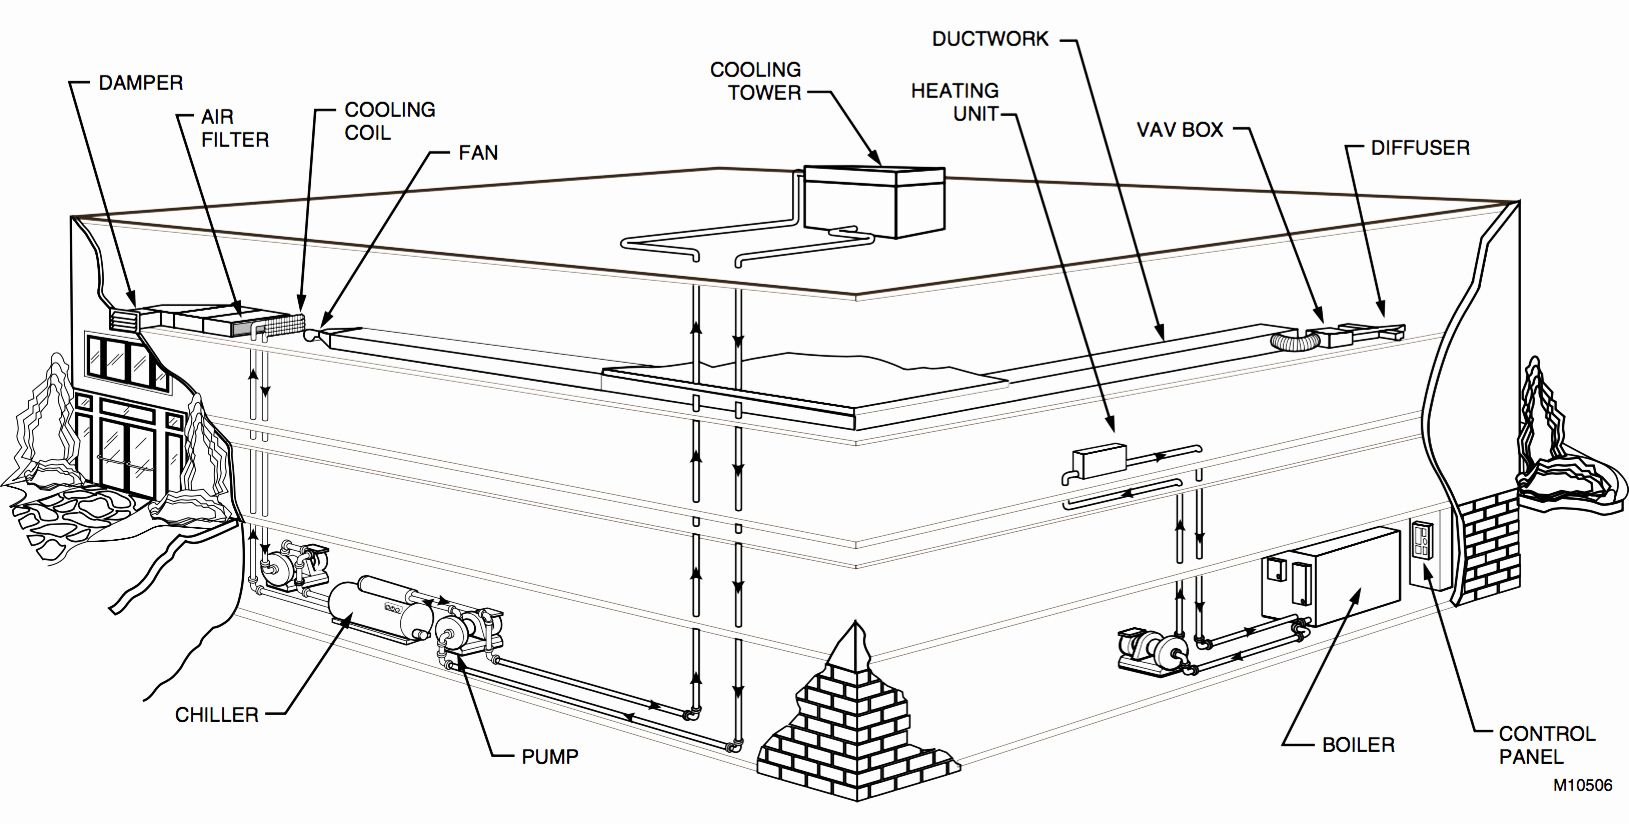 Electrical Engineering Drawing Book Beautiful Typical Hvac System In A  Small Building | Ventilation system design, Hvac system design, Hvac system | Hvac Drawing Book |  | Pinterest